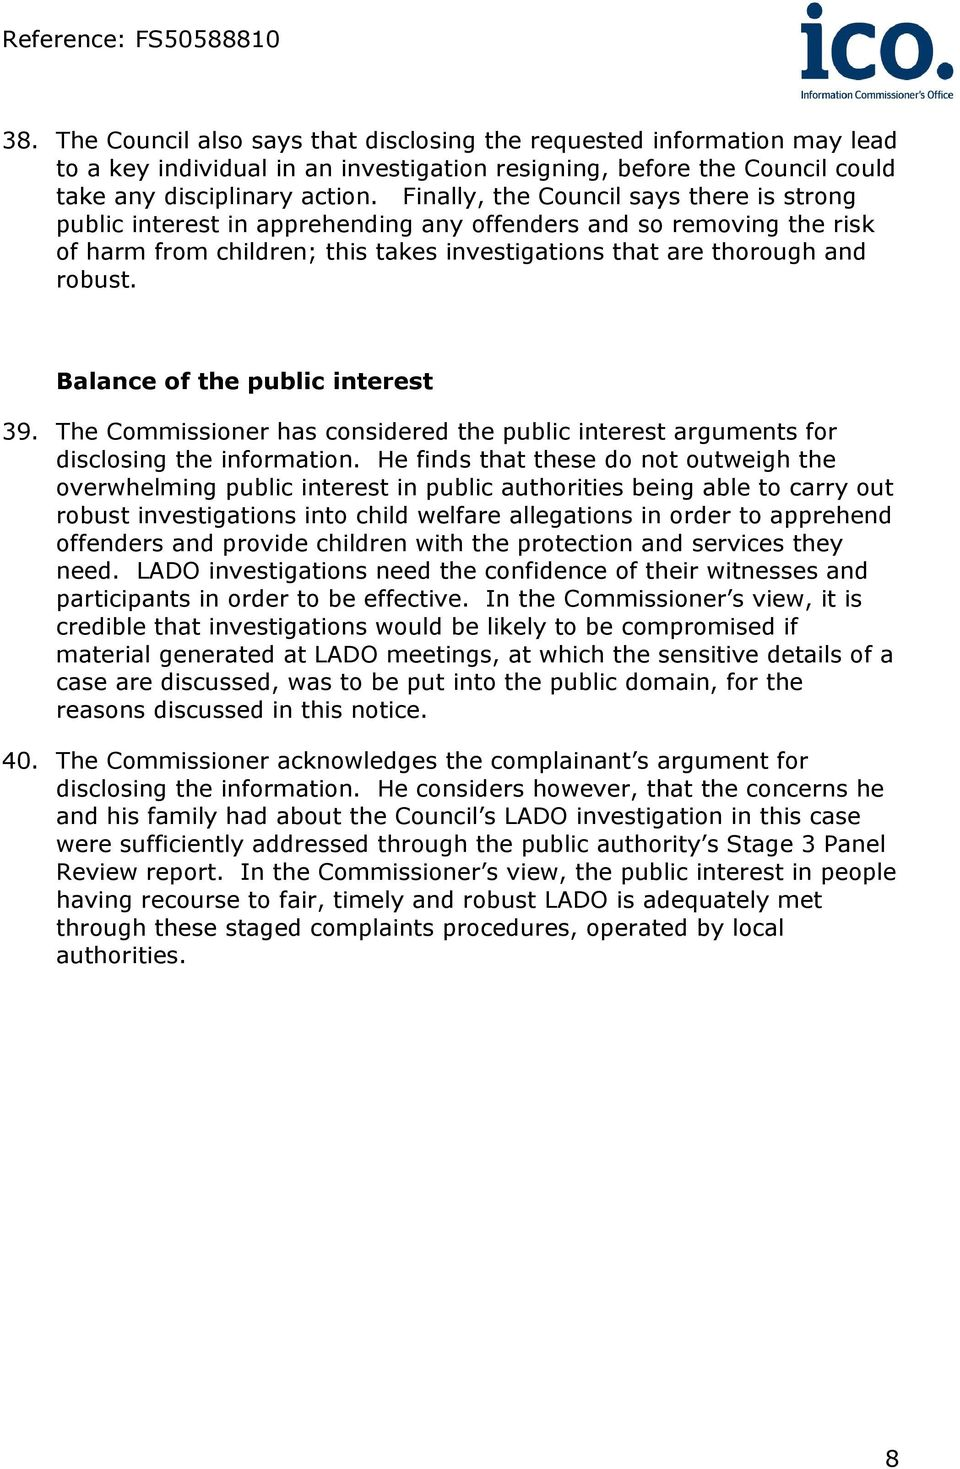 Balance of the public interest 39. The Commissioner has considered the public interest arguments for disclosing the information.